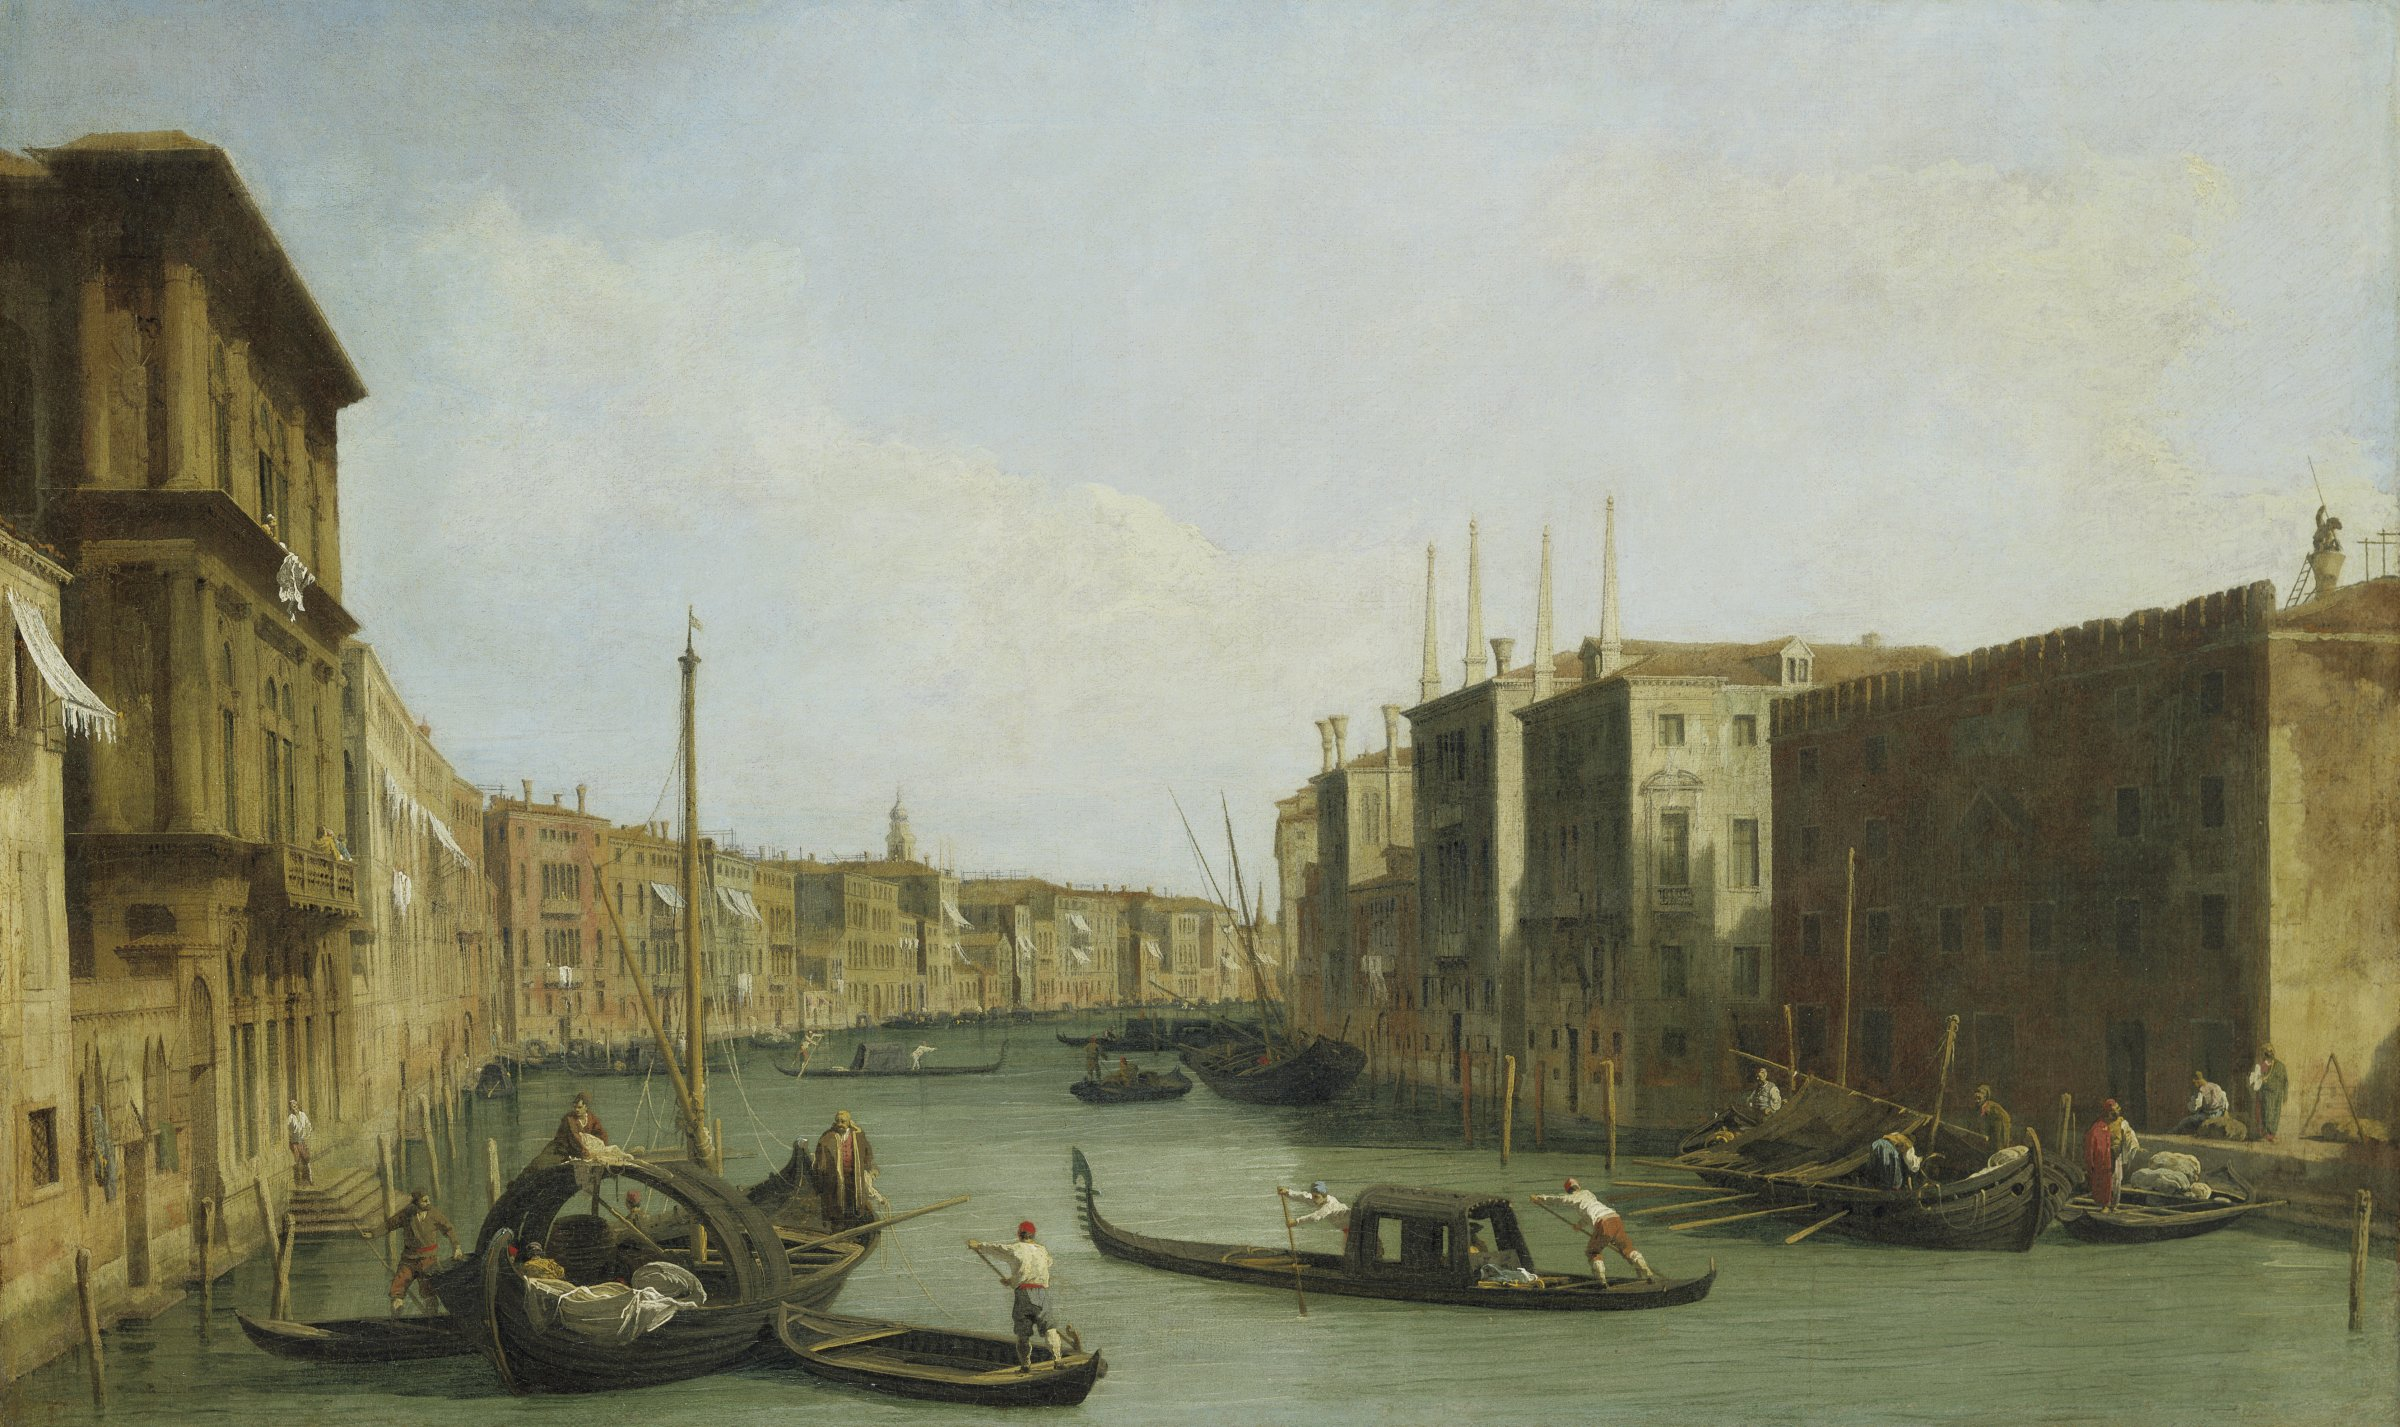 In this sweeping view of a Venetian canal with historic buildings on either side, gondolas laden with passengers are being steered by their gondoliers.